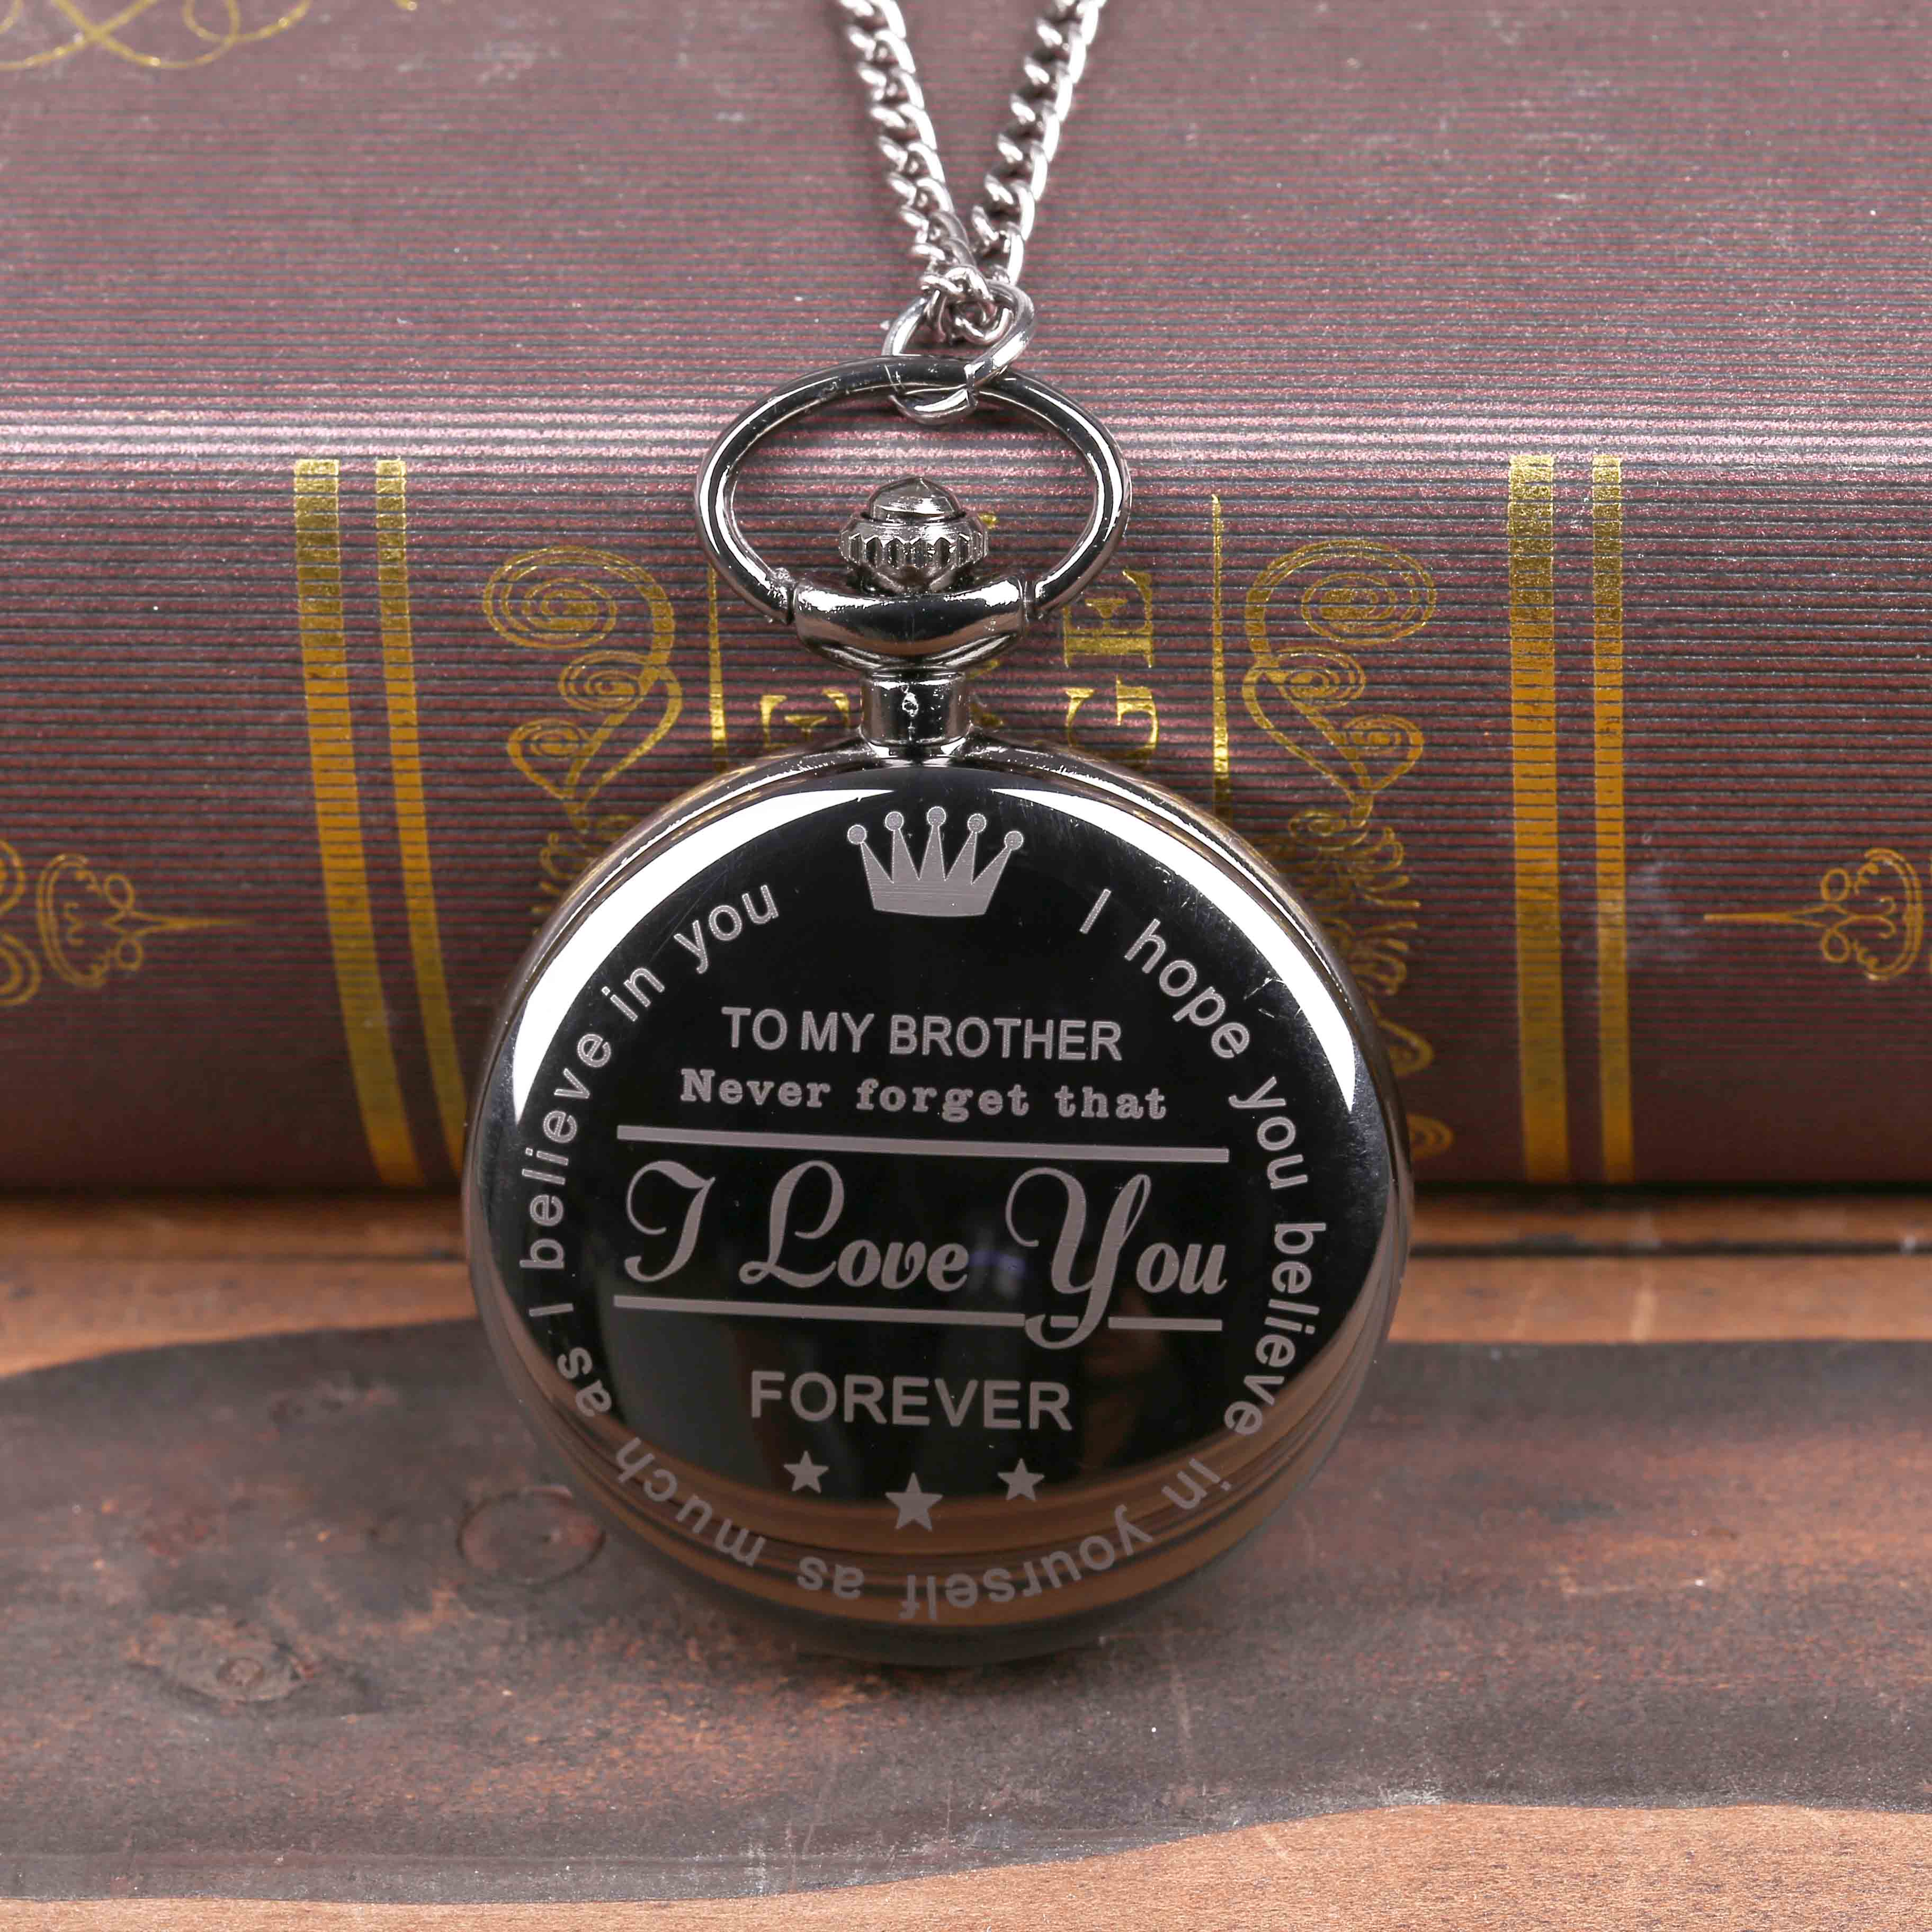 FOT Pocket Watch Personalized Pattern Steampunk Retro Vintage Quartz Roman Numerals Pocket Watch 'TO MY Brother' Boys Watch Gift